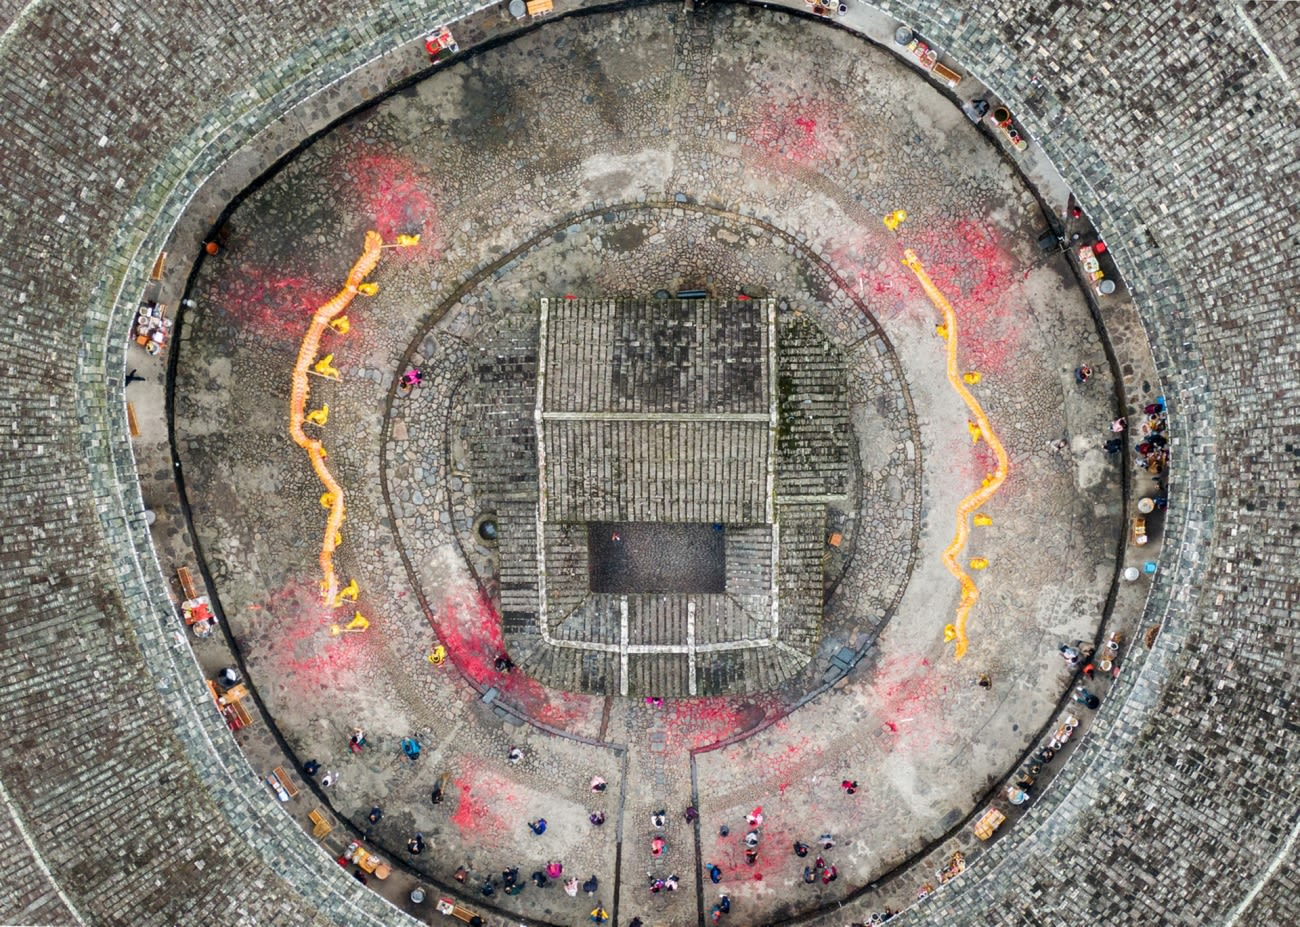 drone-photography-awards-2021-chinese-fire.jpg